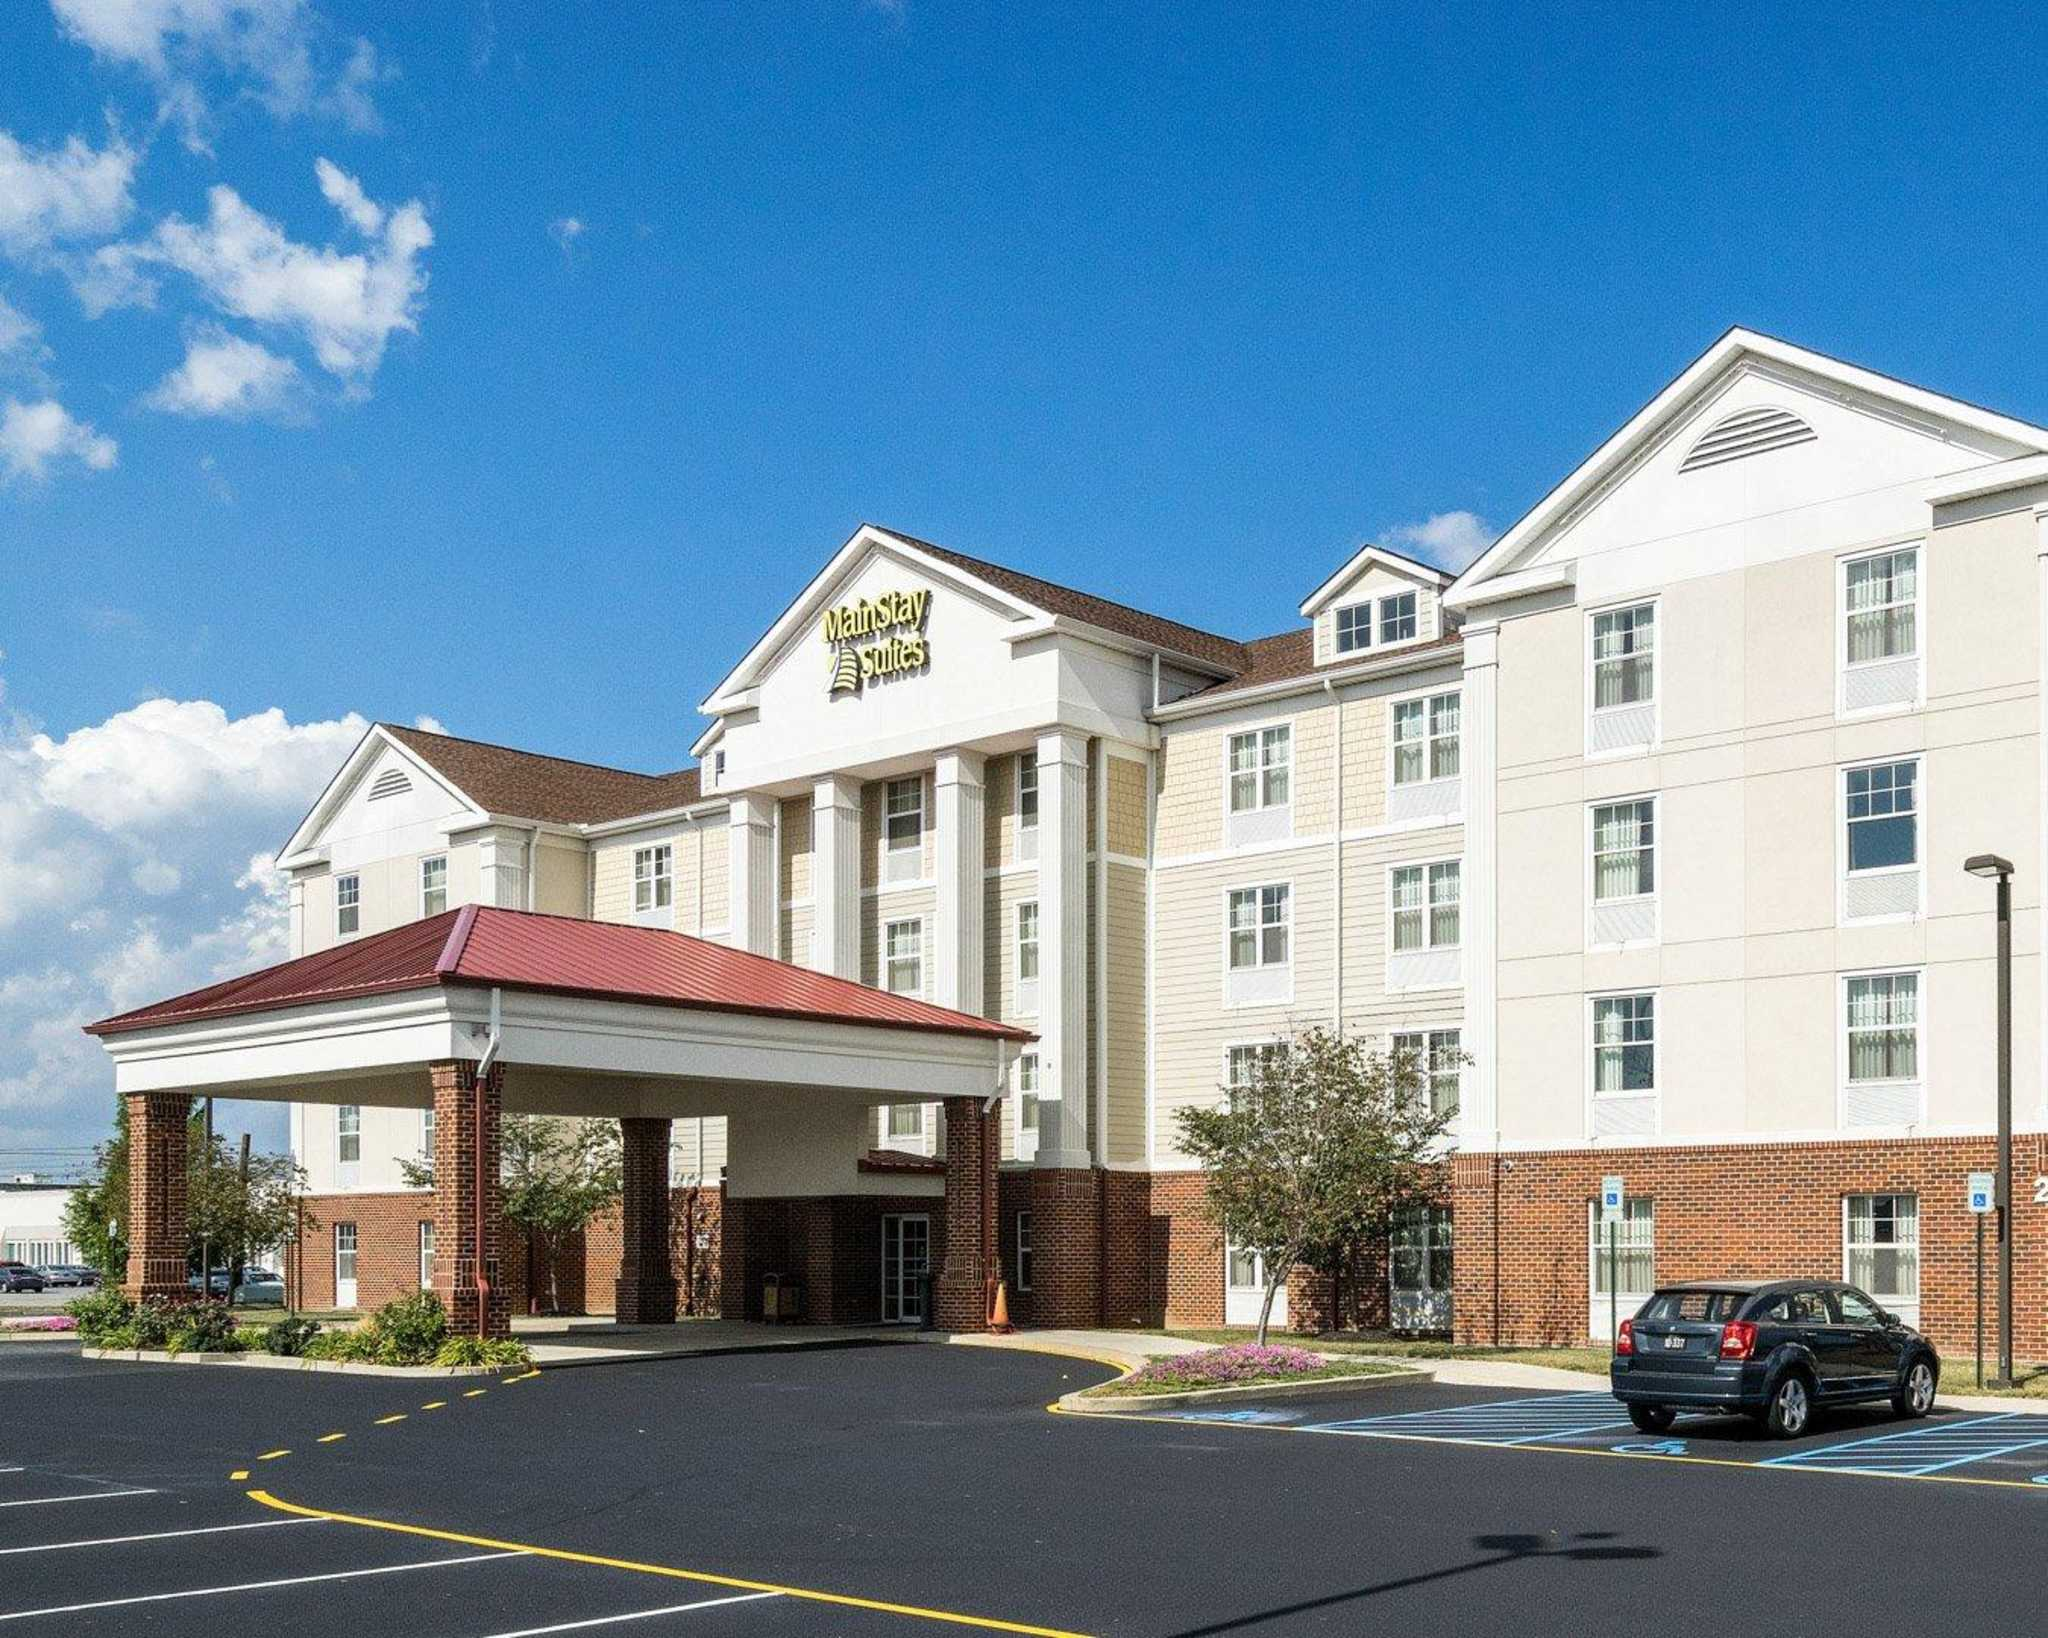 MainStay Suites image 3